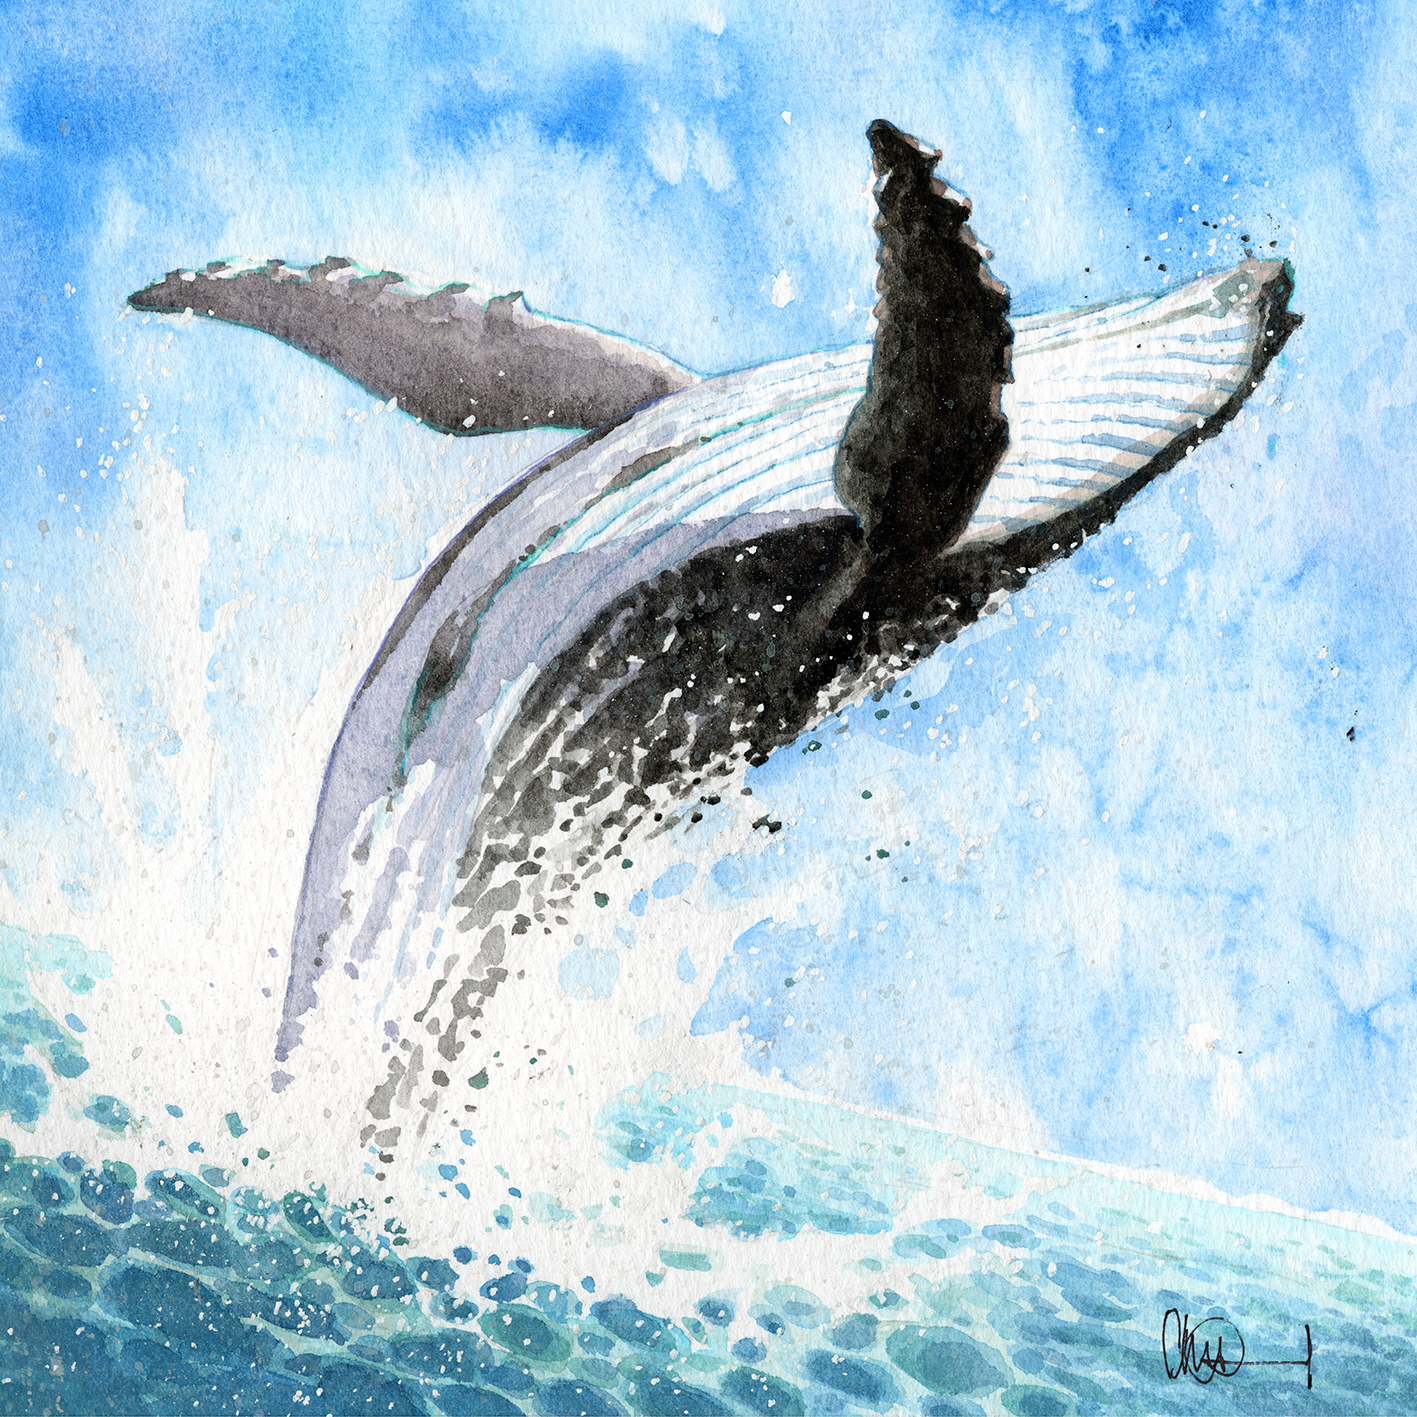 Watercolour painting of a black and white whale breaching in a blue sea with white foam spray all around